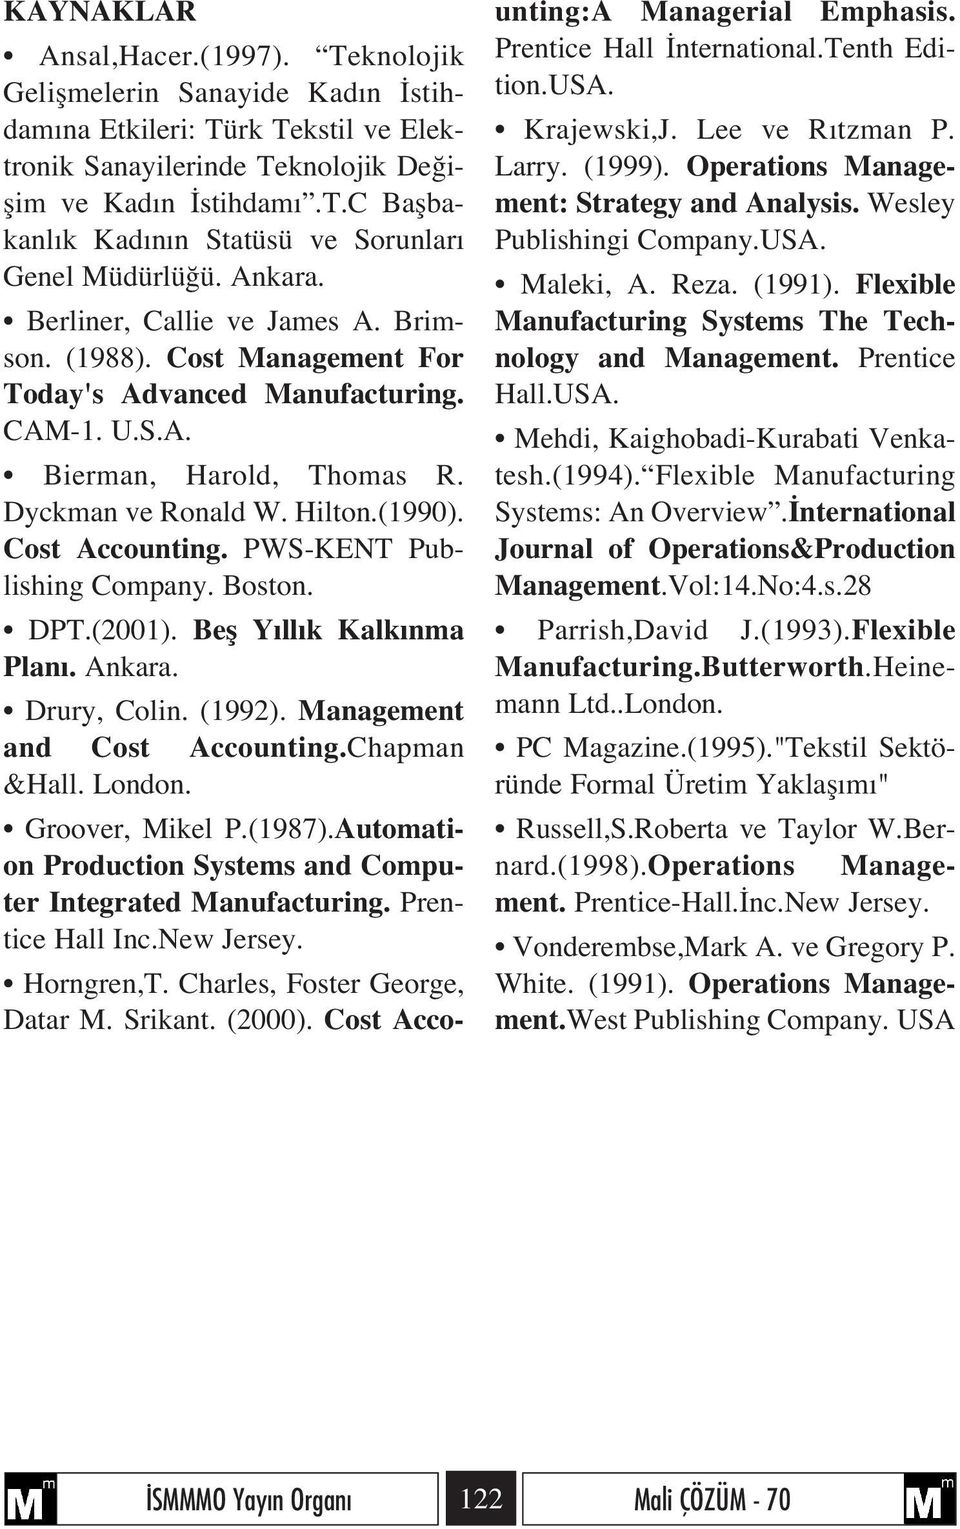 PWS-KENT Publishing Company. Boston. DPT.(2001). Befl Y ll k Kalk nma Plan. Ankara. Drury, Colin. (1992). Management and Cost Accounting.Chapman &Hall. London. Groover, Mikel P.(1987).